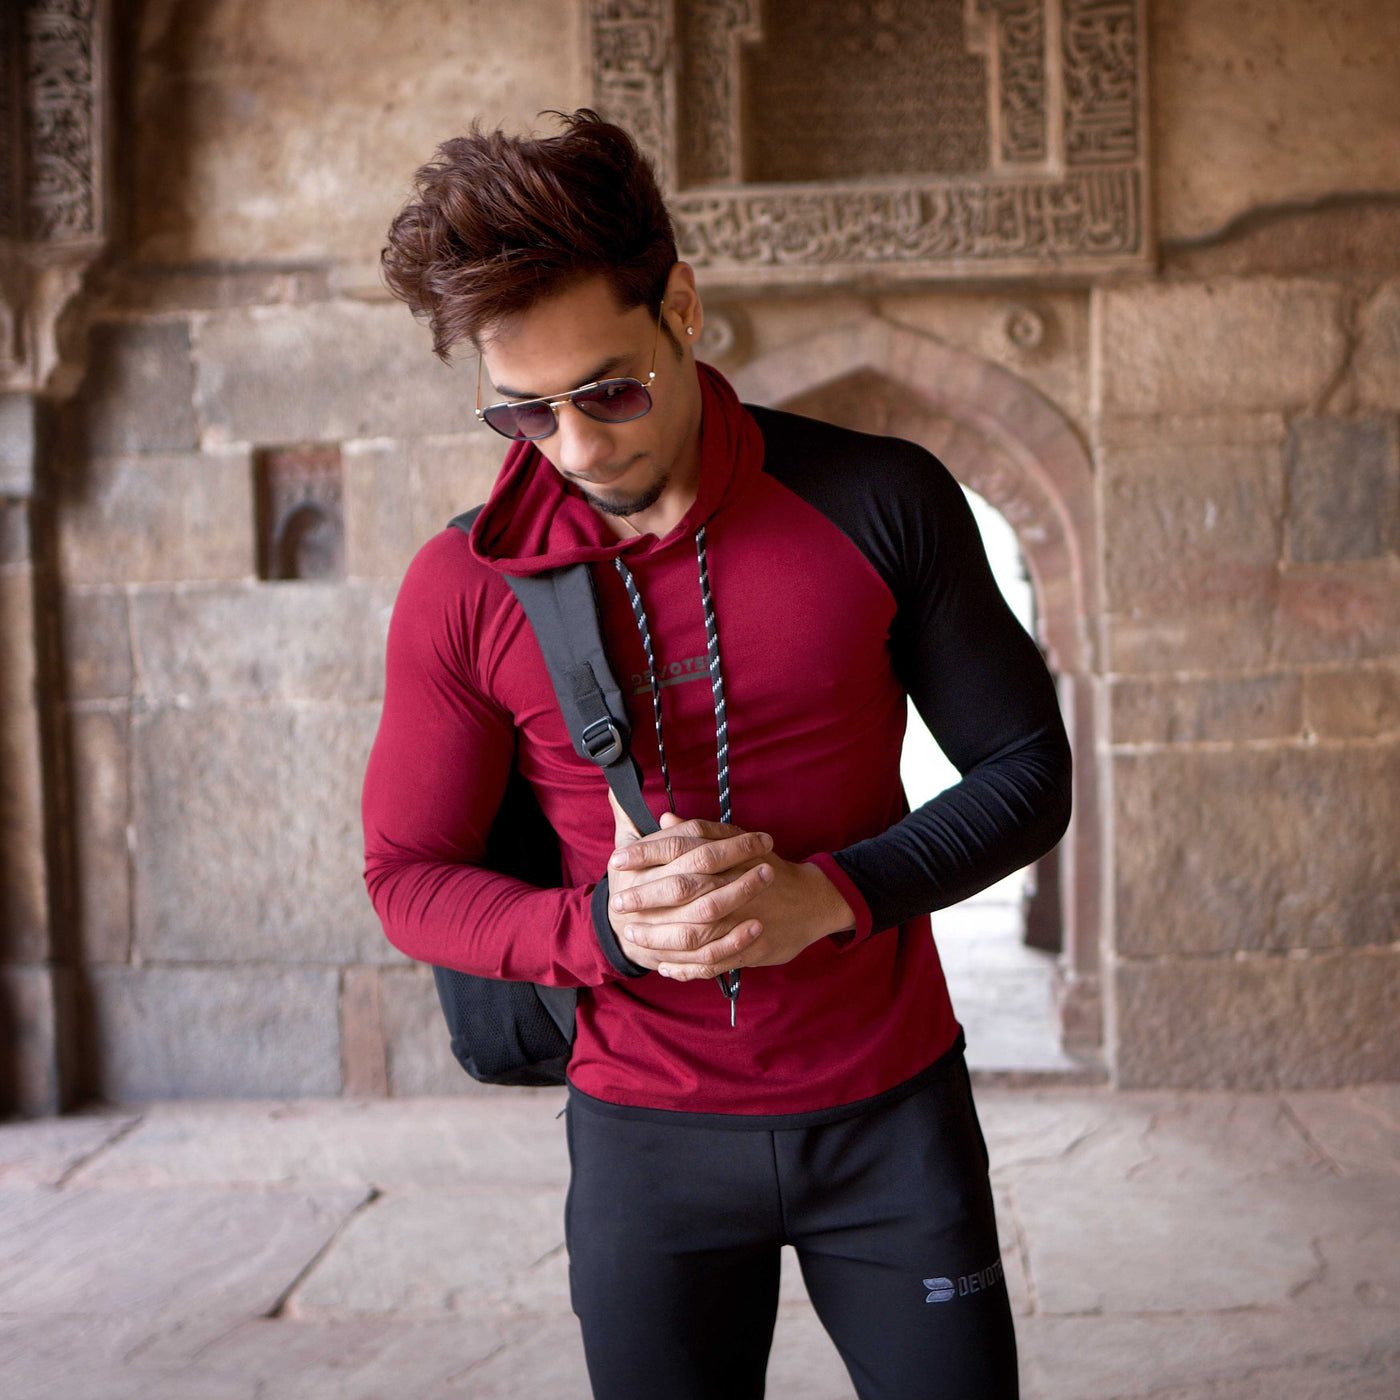 Hoodie T-shirts - Devoted gym & sports wear - Finest fabric yet! - Nikhil Jain (@Nikhil_Jain23)